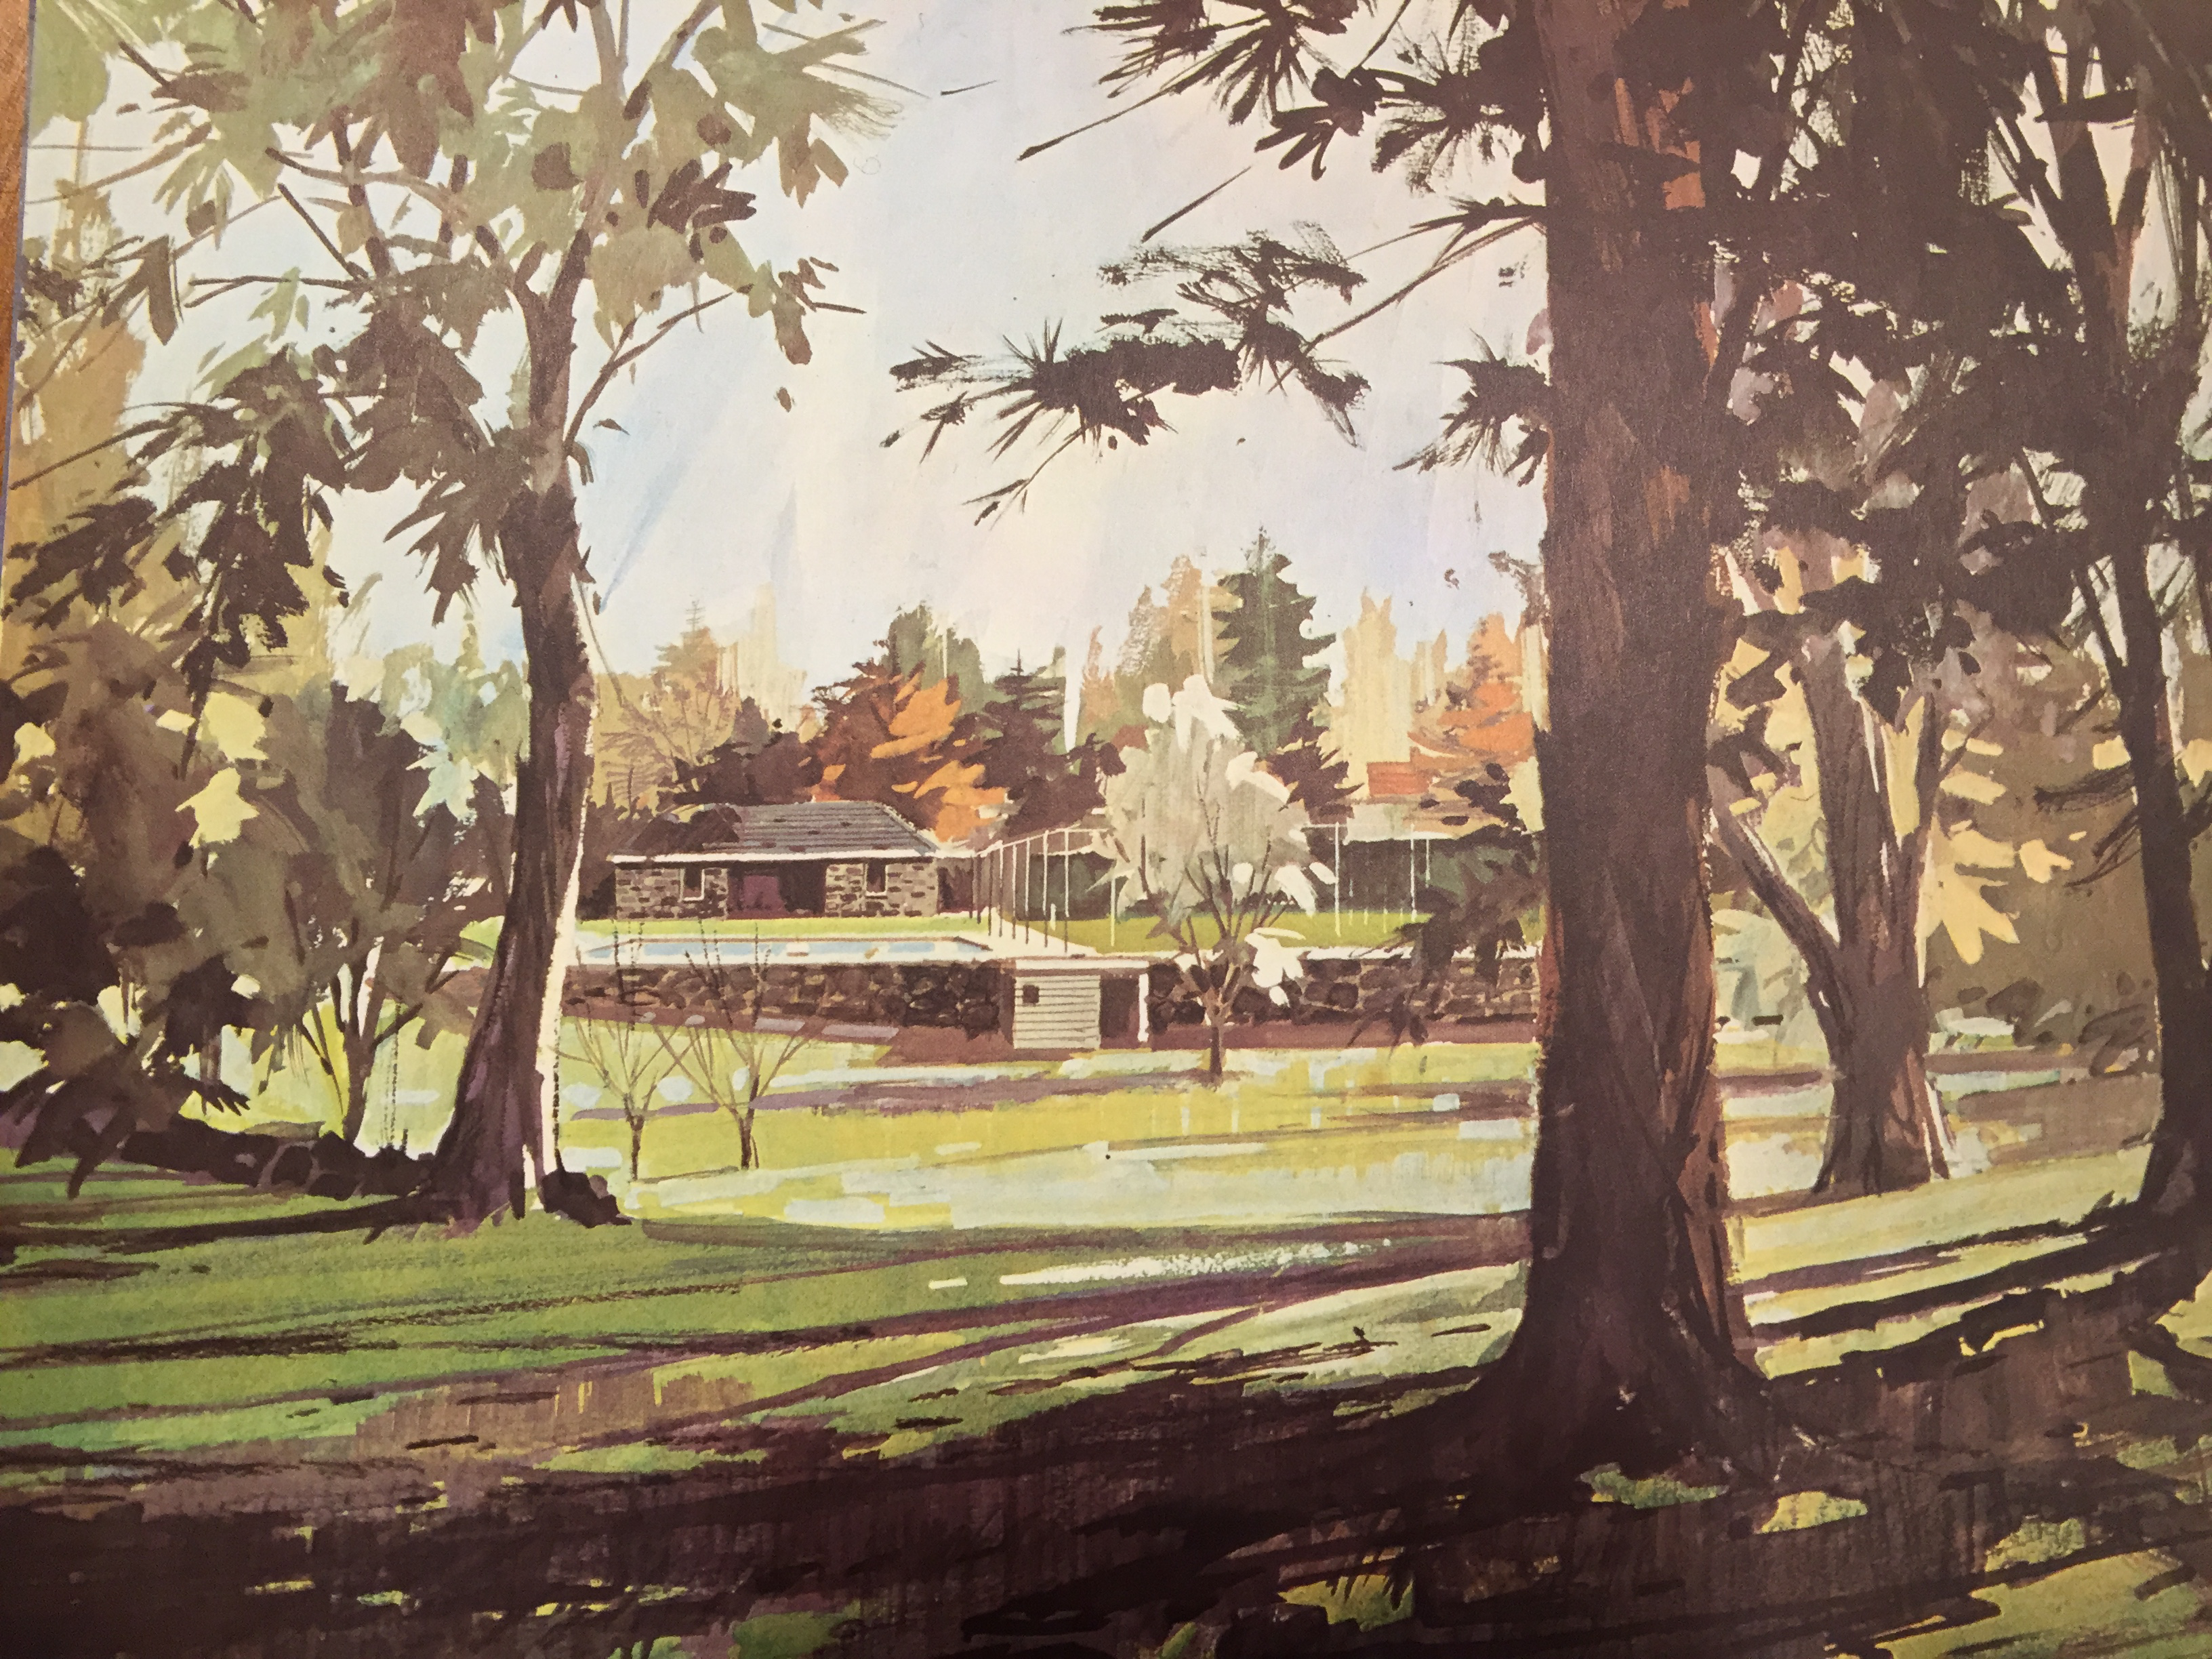 An image of the garden from the 1971 brochure advertising the Pines apartments. This shows the pool area before the current pavilion was built and other changes to the garden.